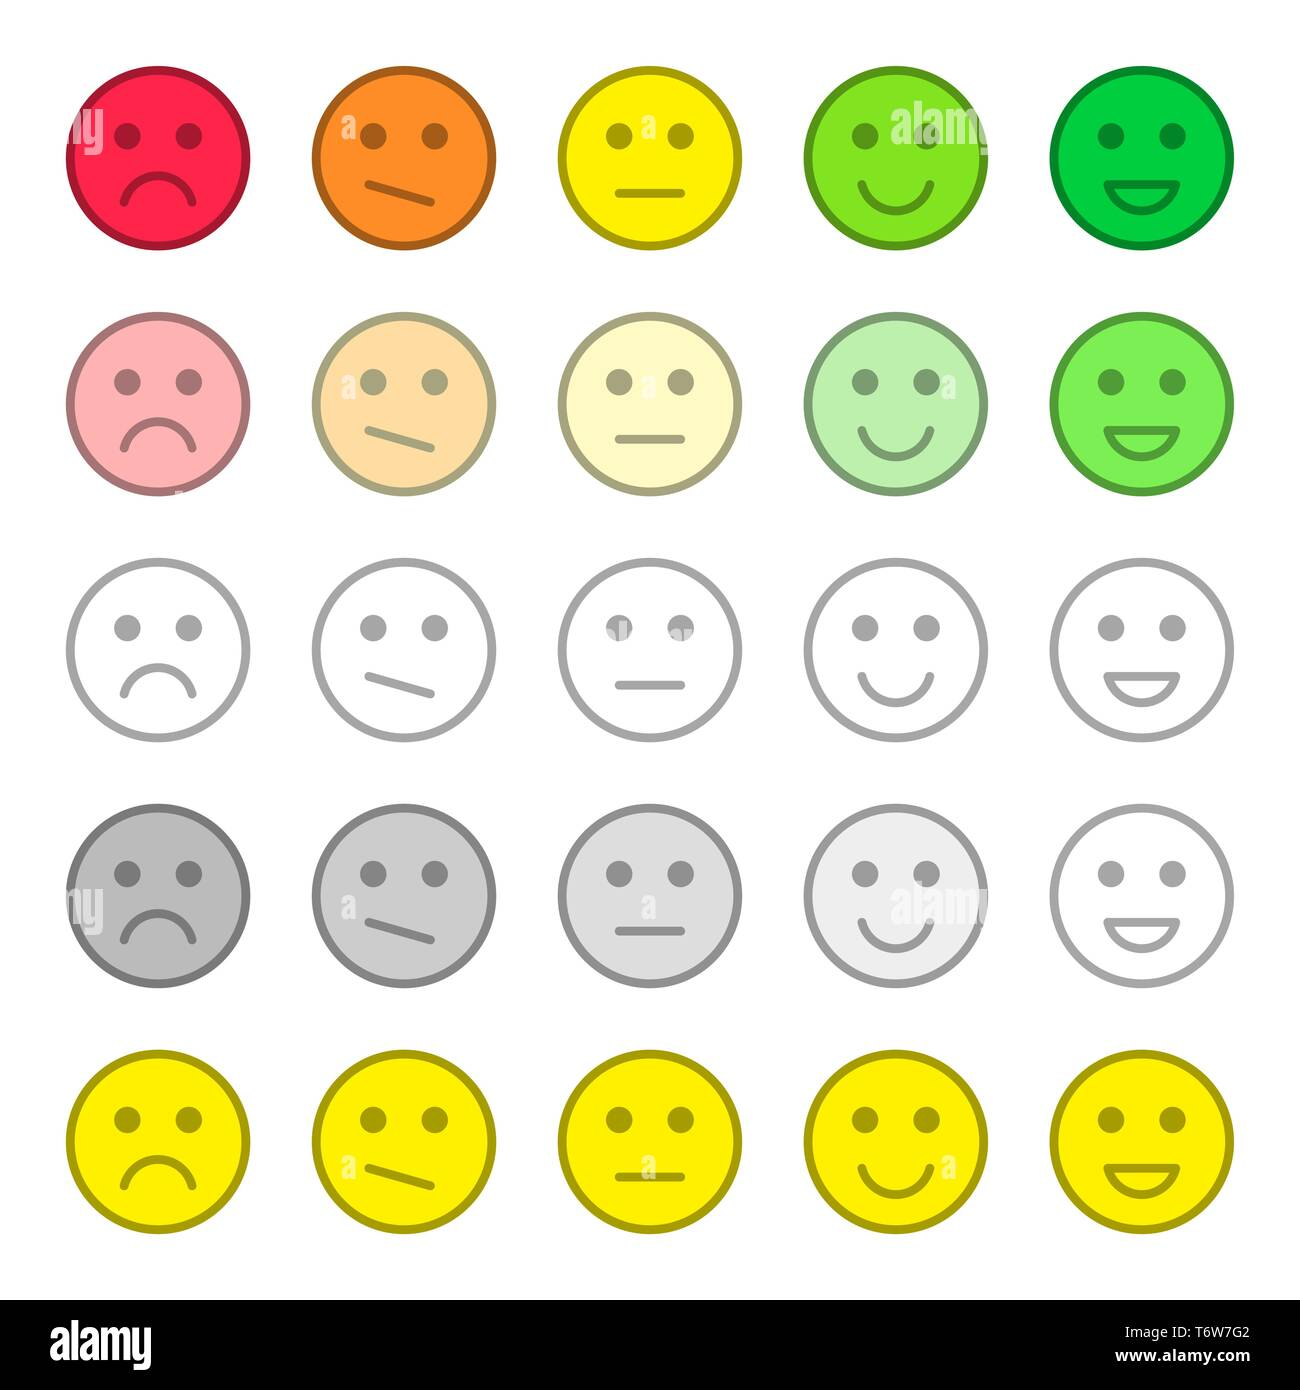 Feedback and rating satisfaction. Customer service quality review. Collection of smiles, various emotions. Beautiful flat icons. - Stock Vector